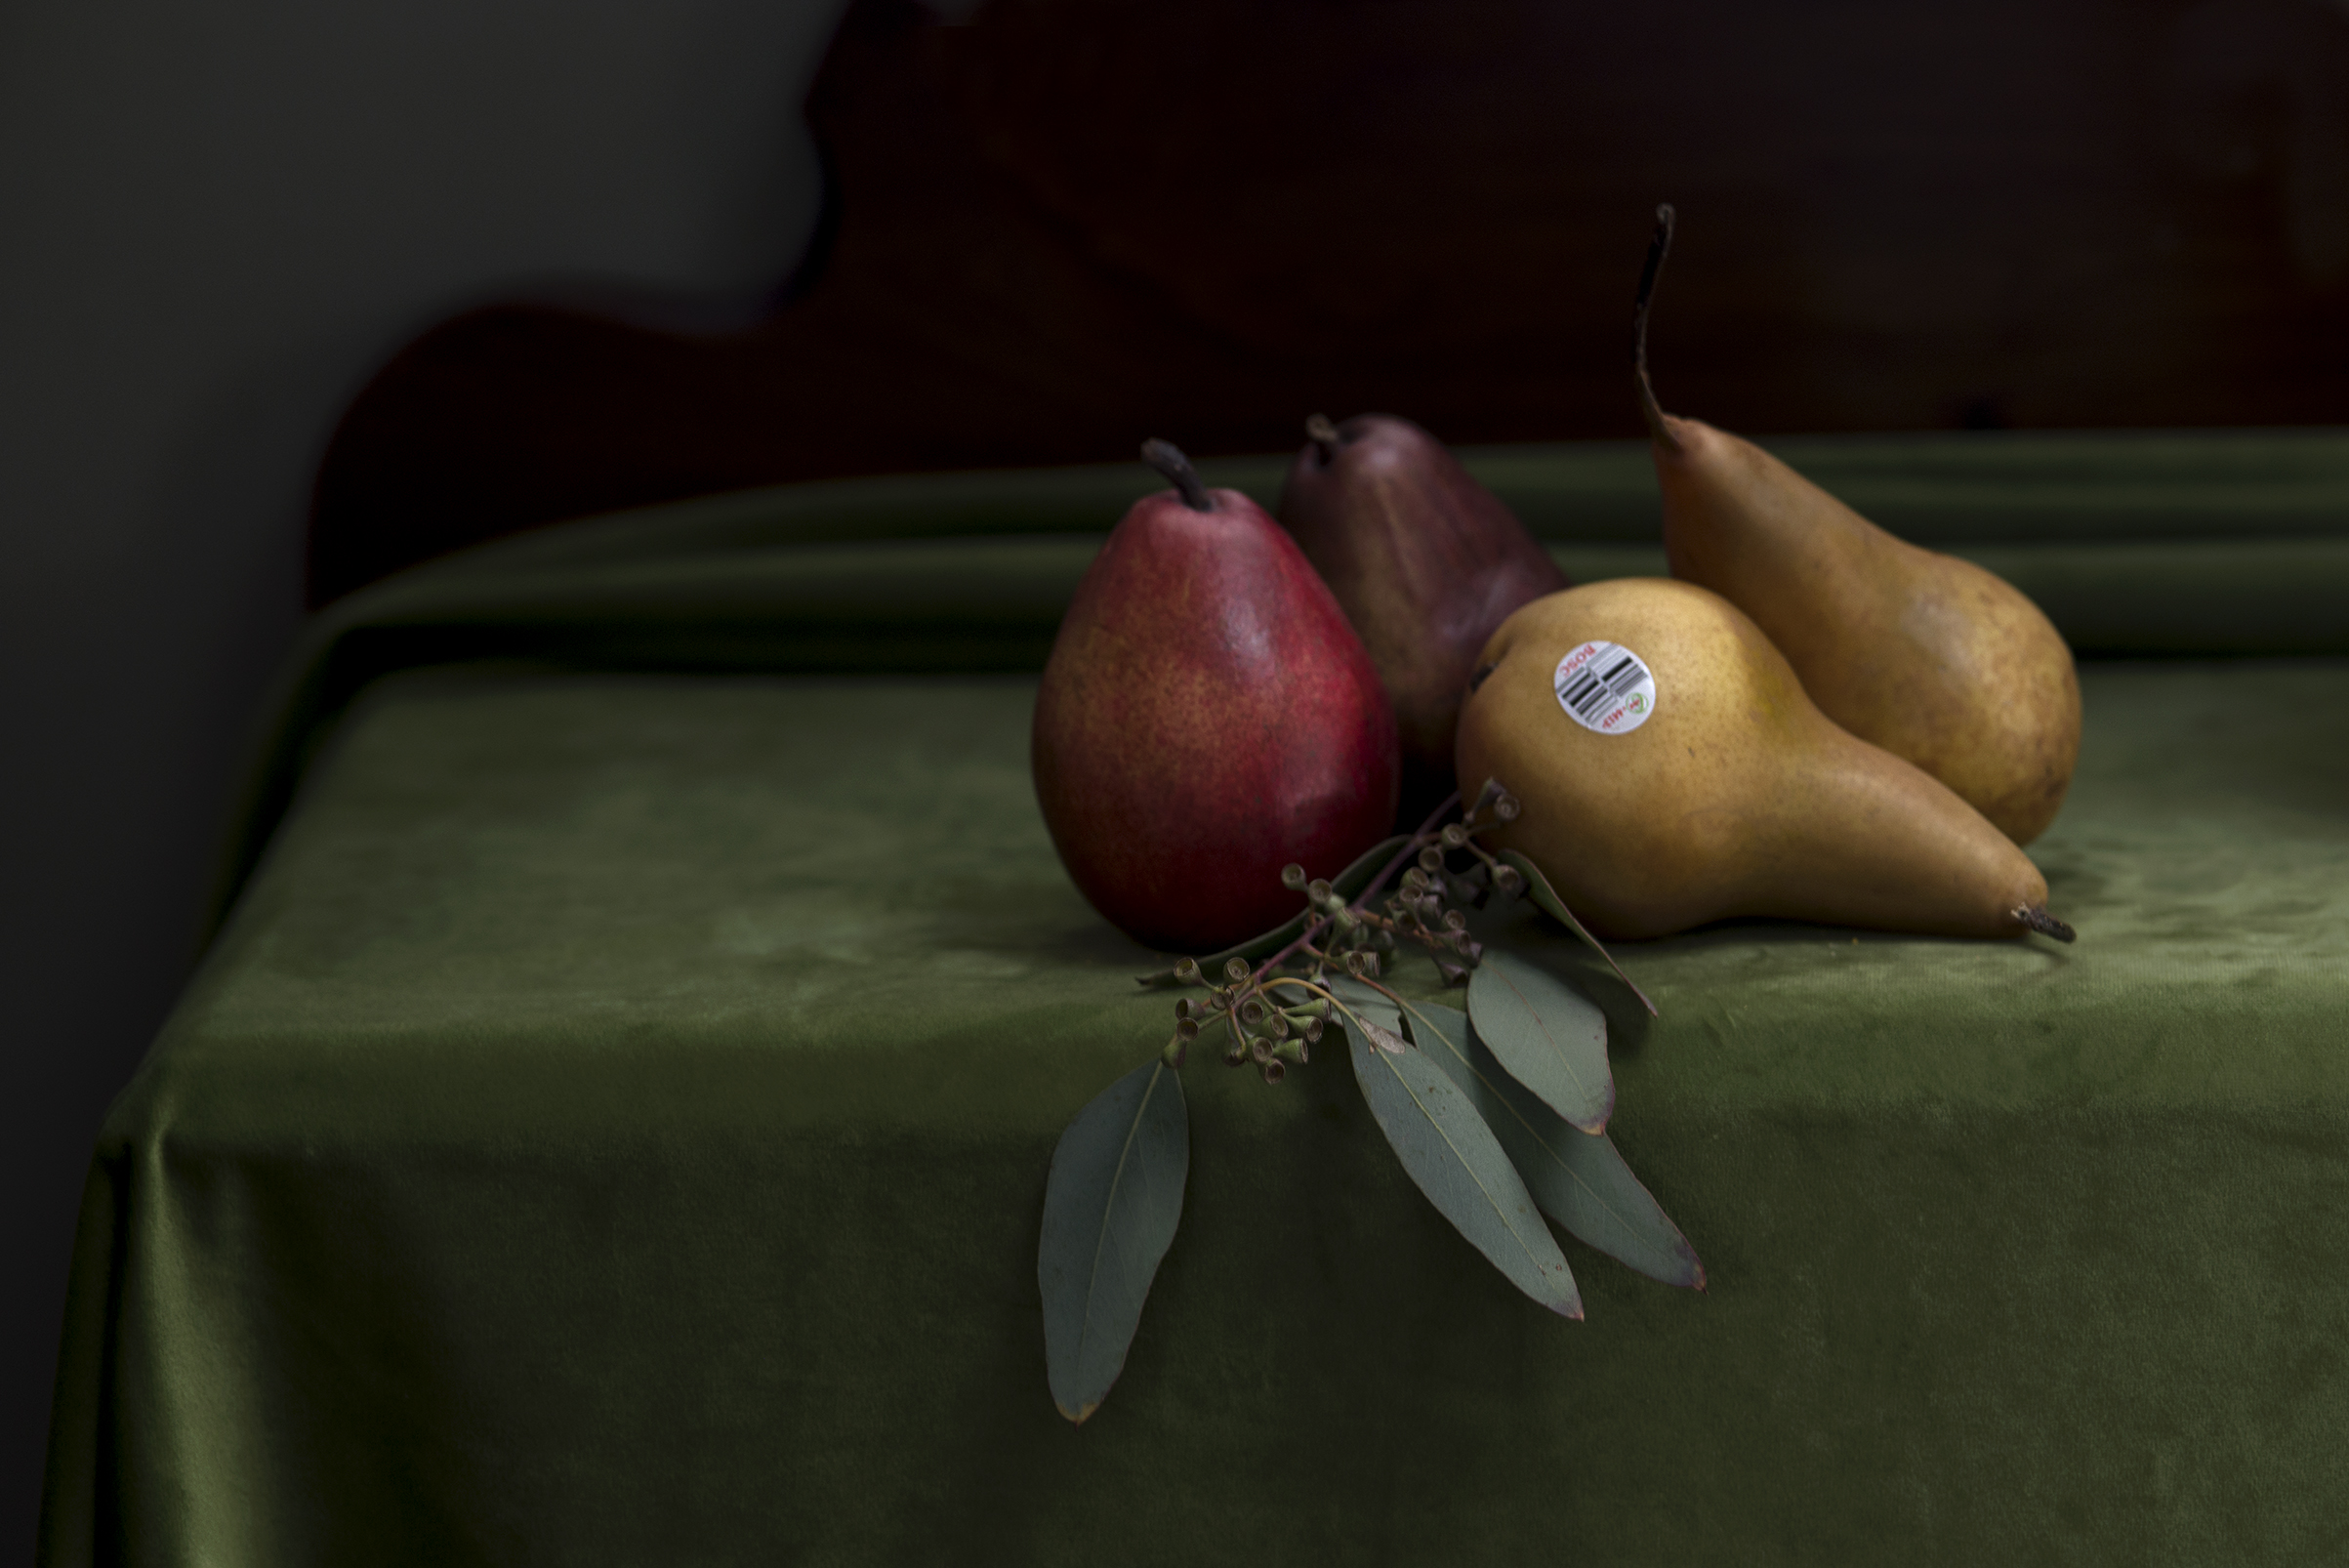 Pears out of season